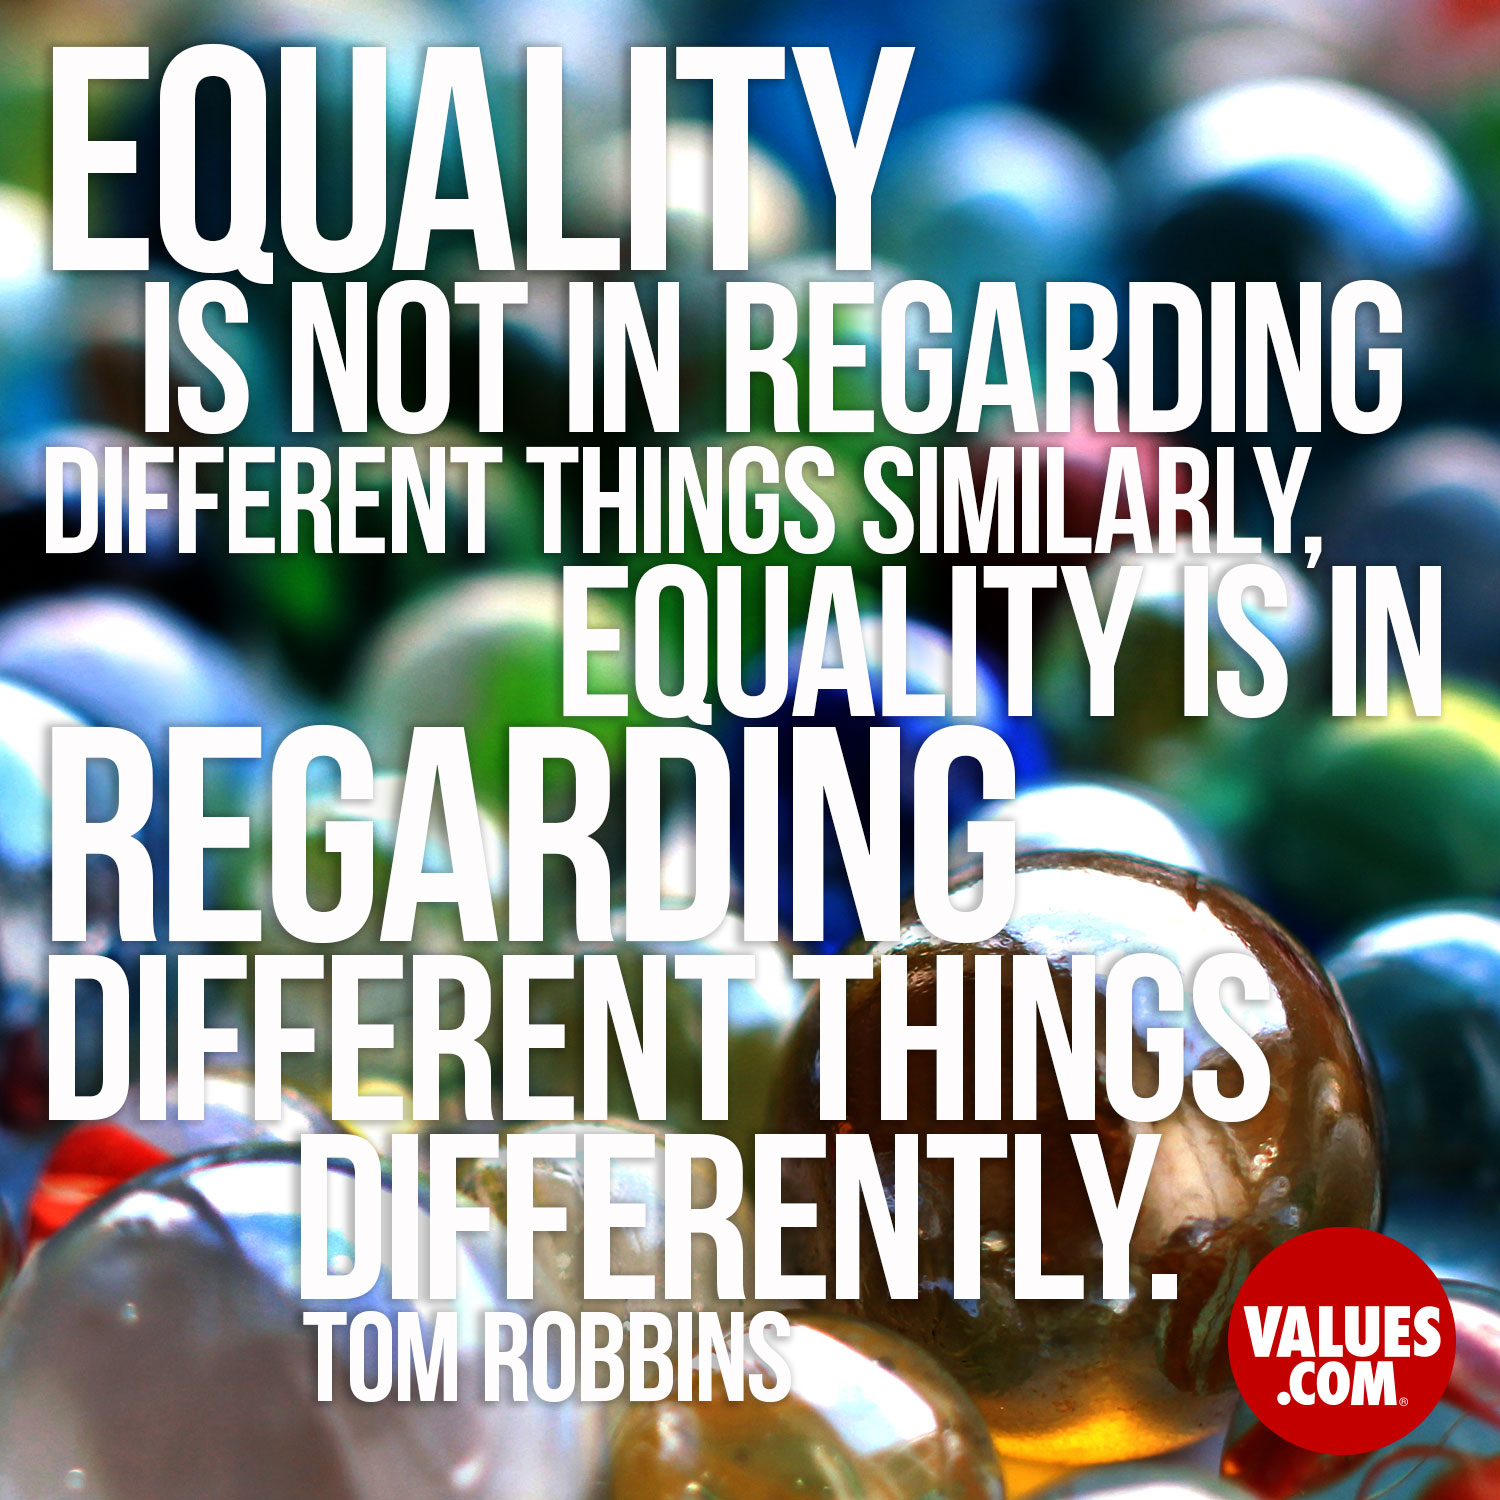 Equality is not in regarding different things similarly, equality is in regarding different things differently. —Tom Robbins